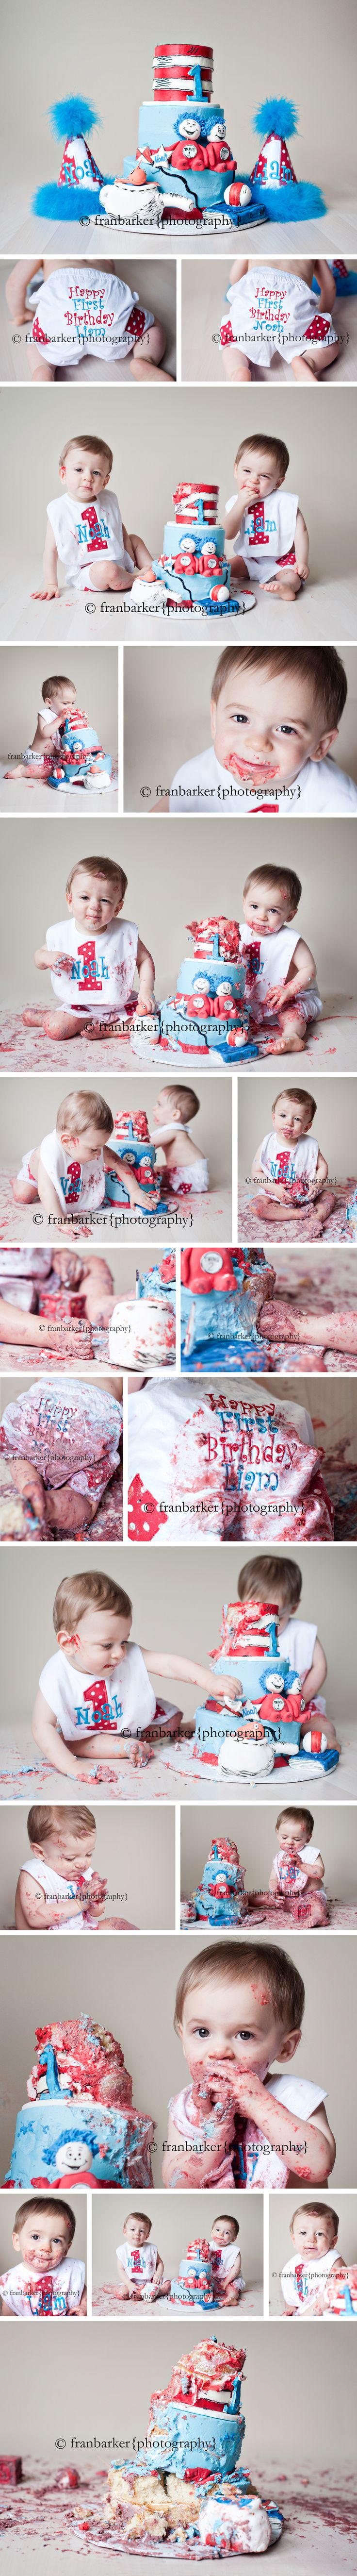 we need to get them eating the smash cake on camera like this. and we need cute bibs for each